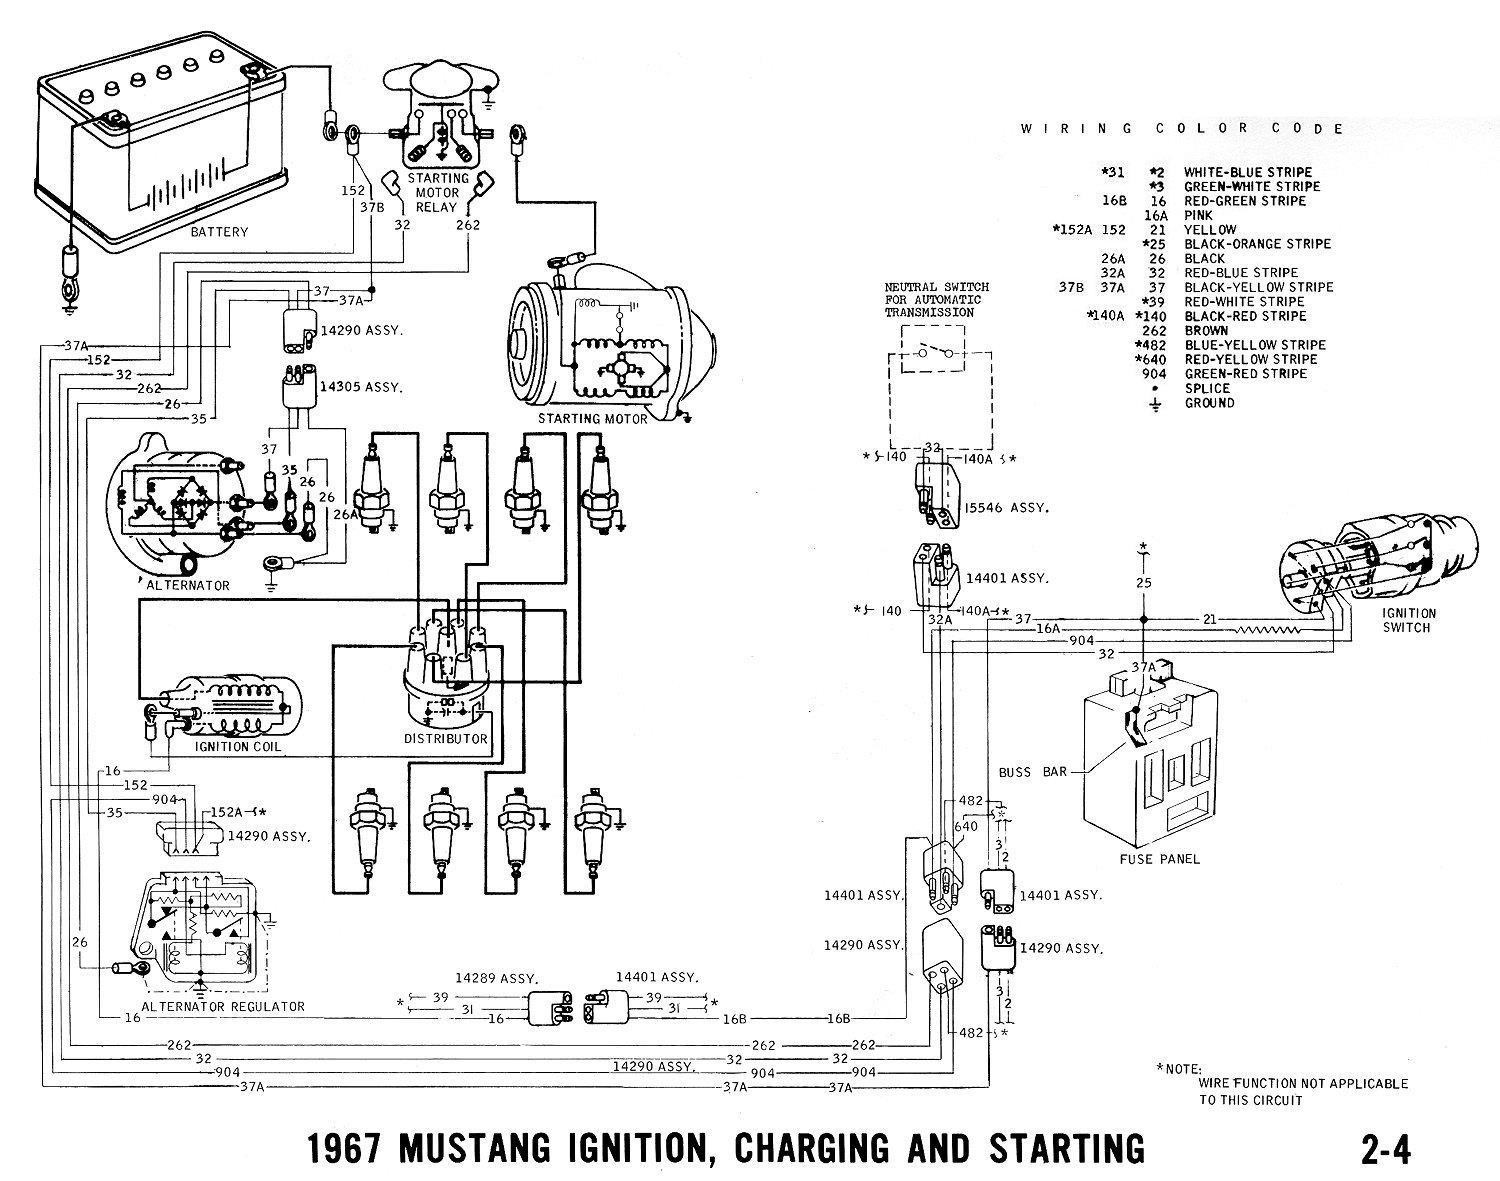 hight resolution of mustang alternator wiring diagram wiring diagram technic 2003 mustang alternator wire harness